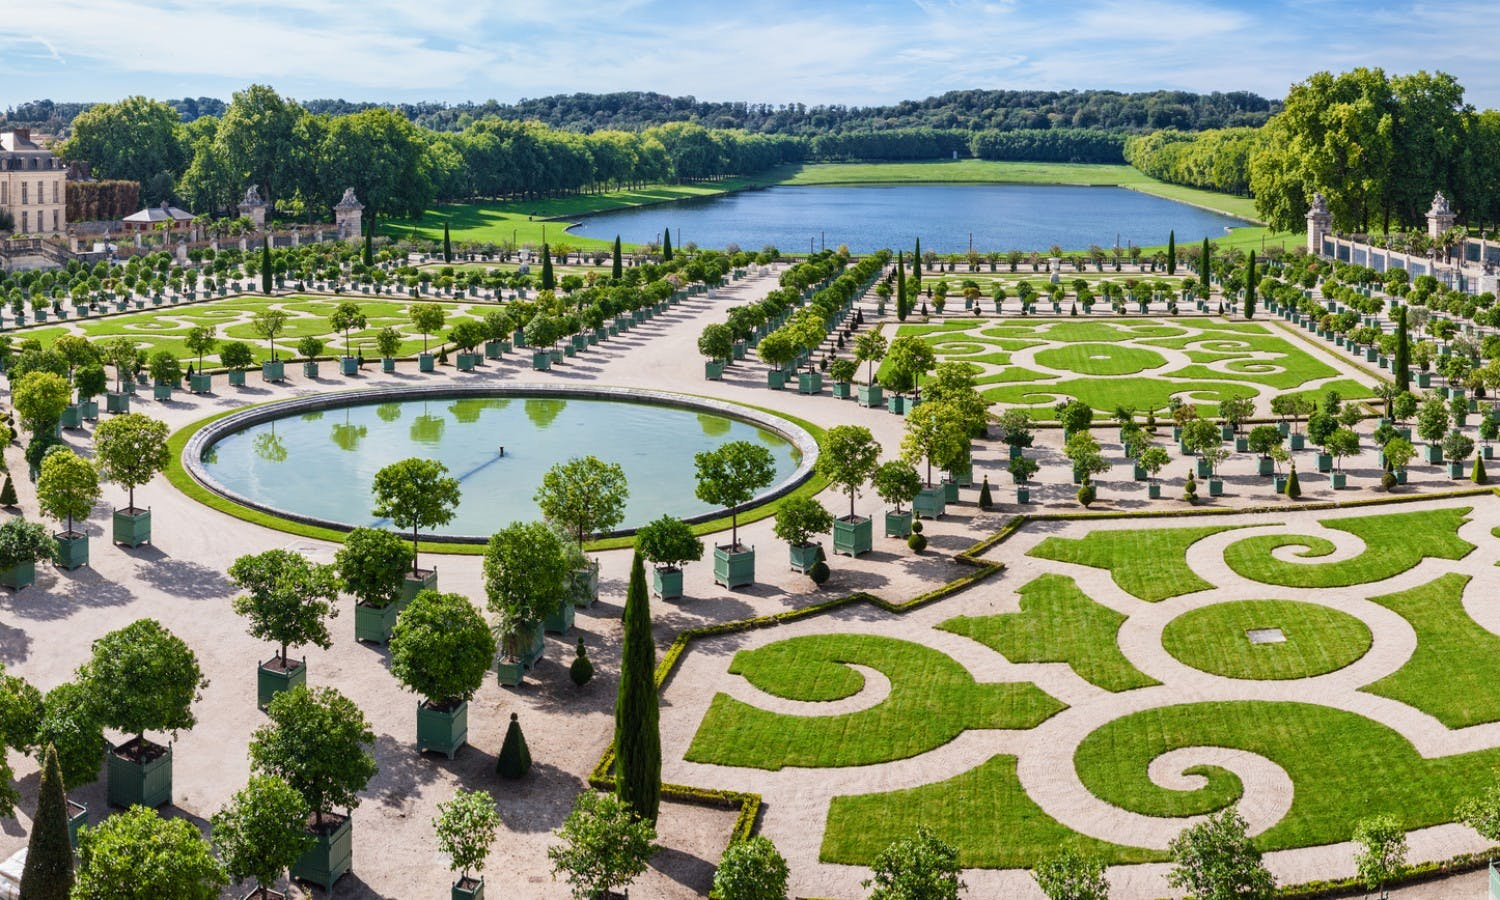 Palace of Versailles entrance tickets with audioguide and full access to gardens